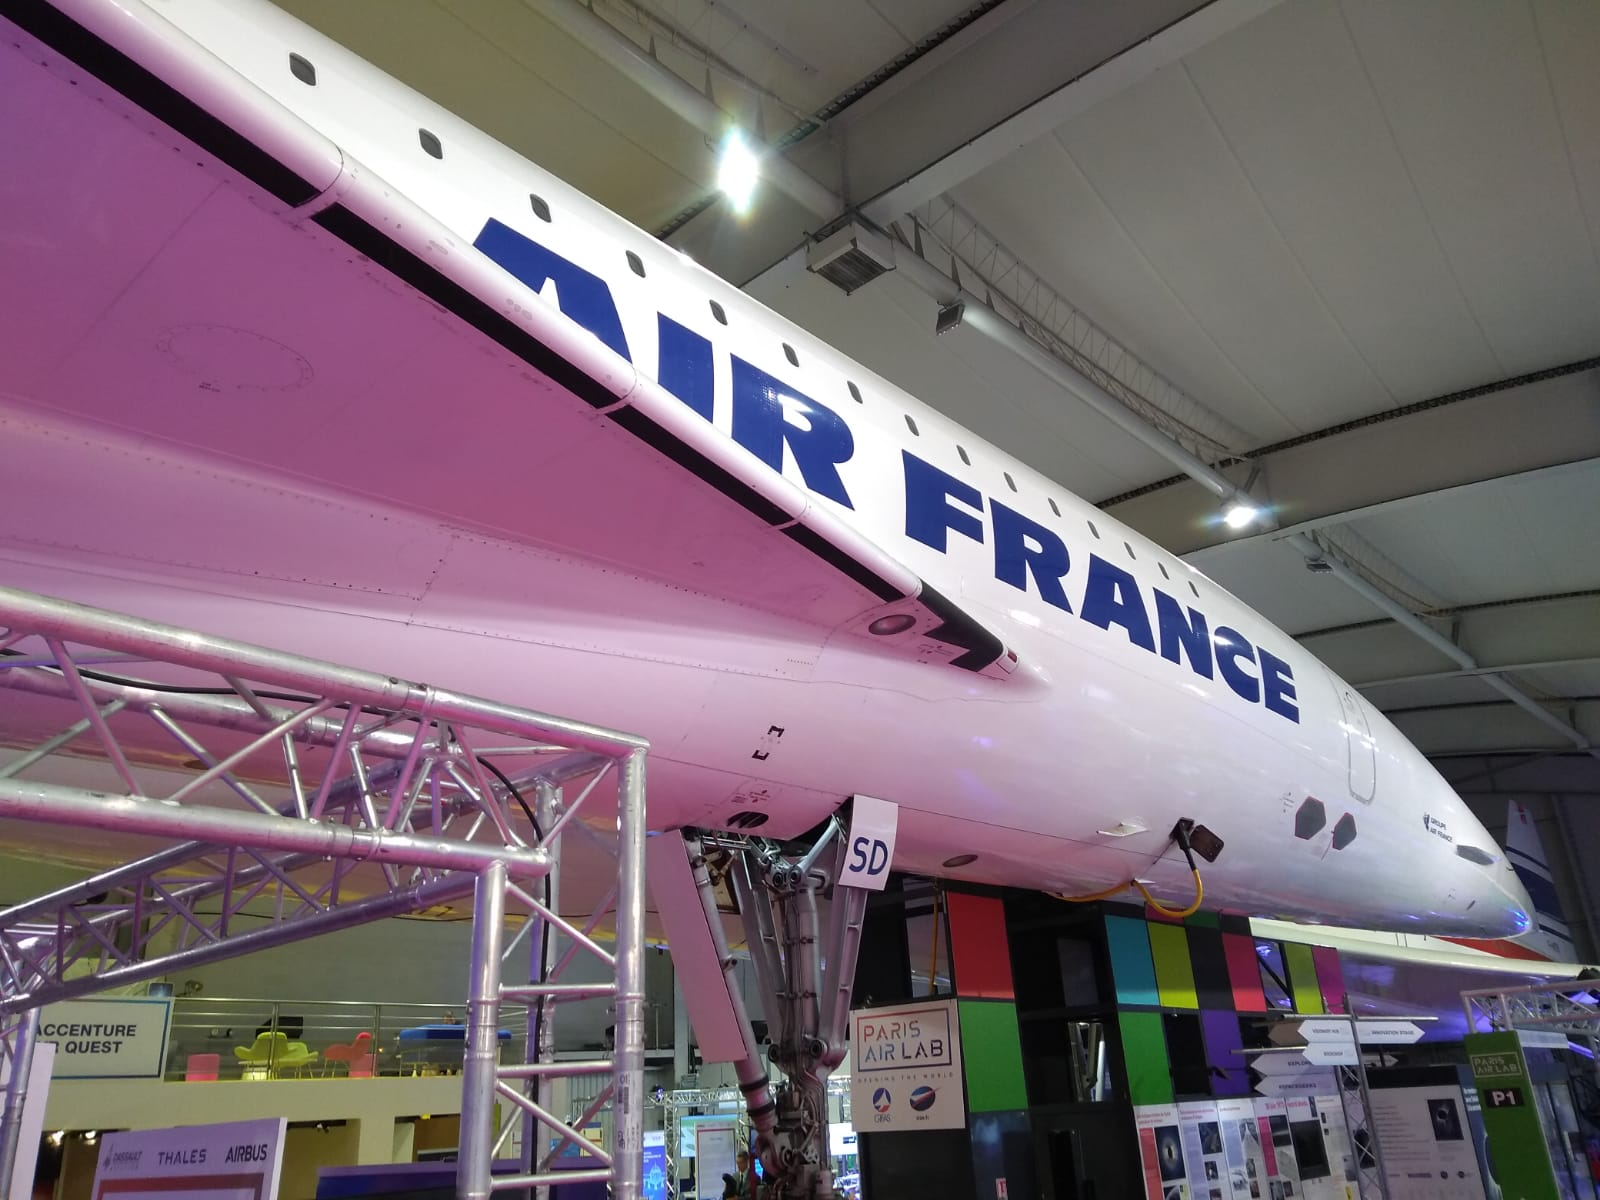 The concorde at the Paris Air Show